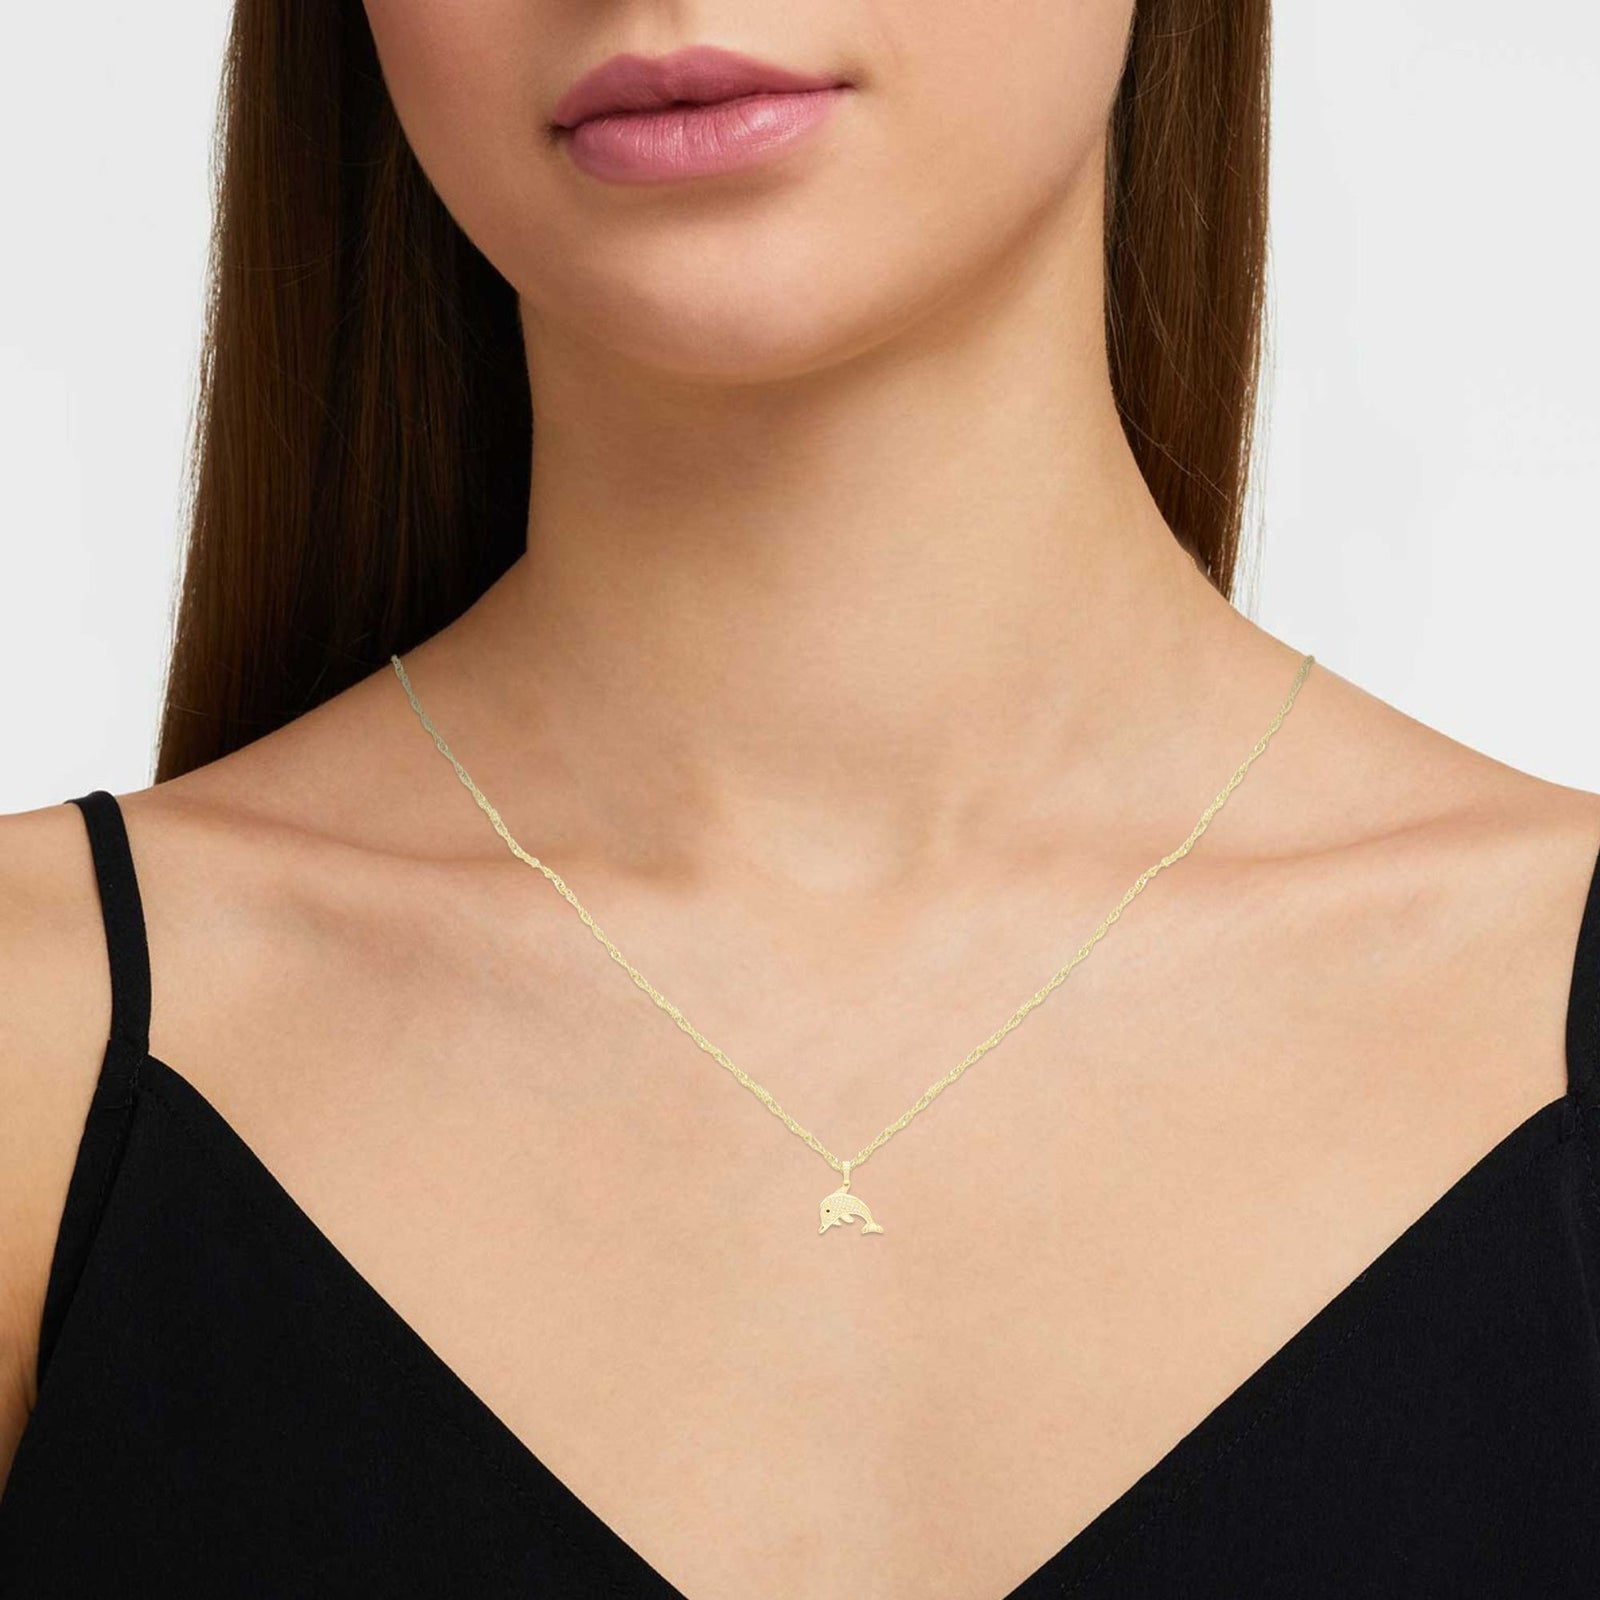 Whale Cubic Zirconia Pendant With Necklace Set 14K Gold Filled